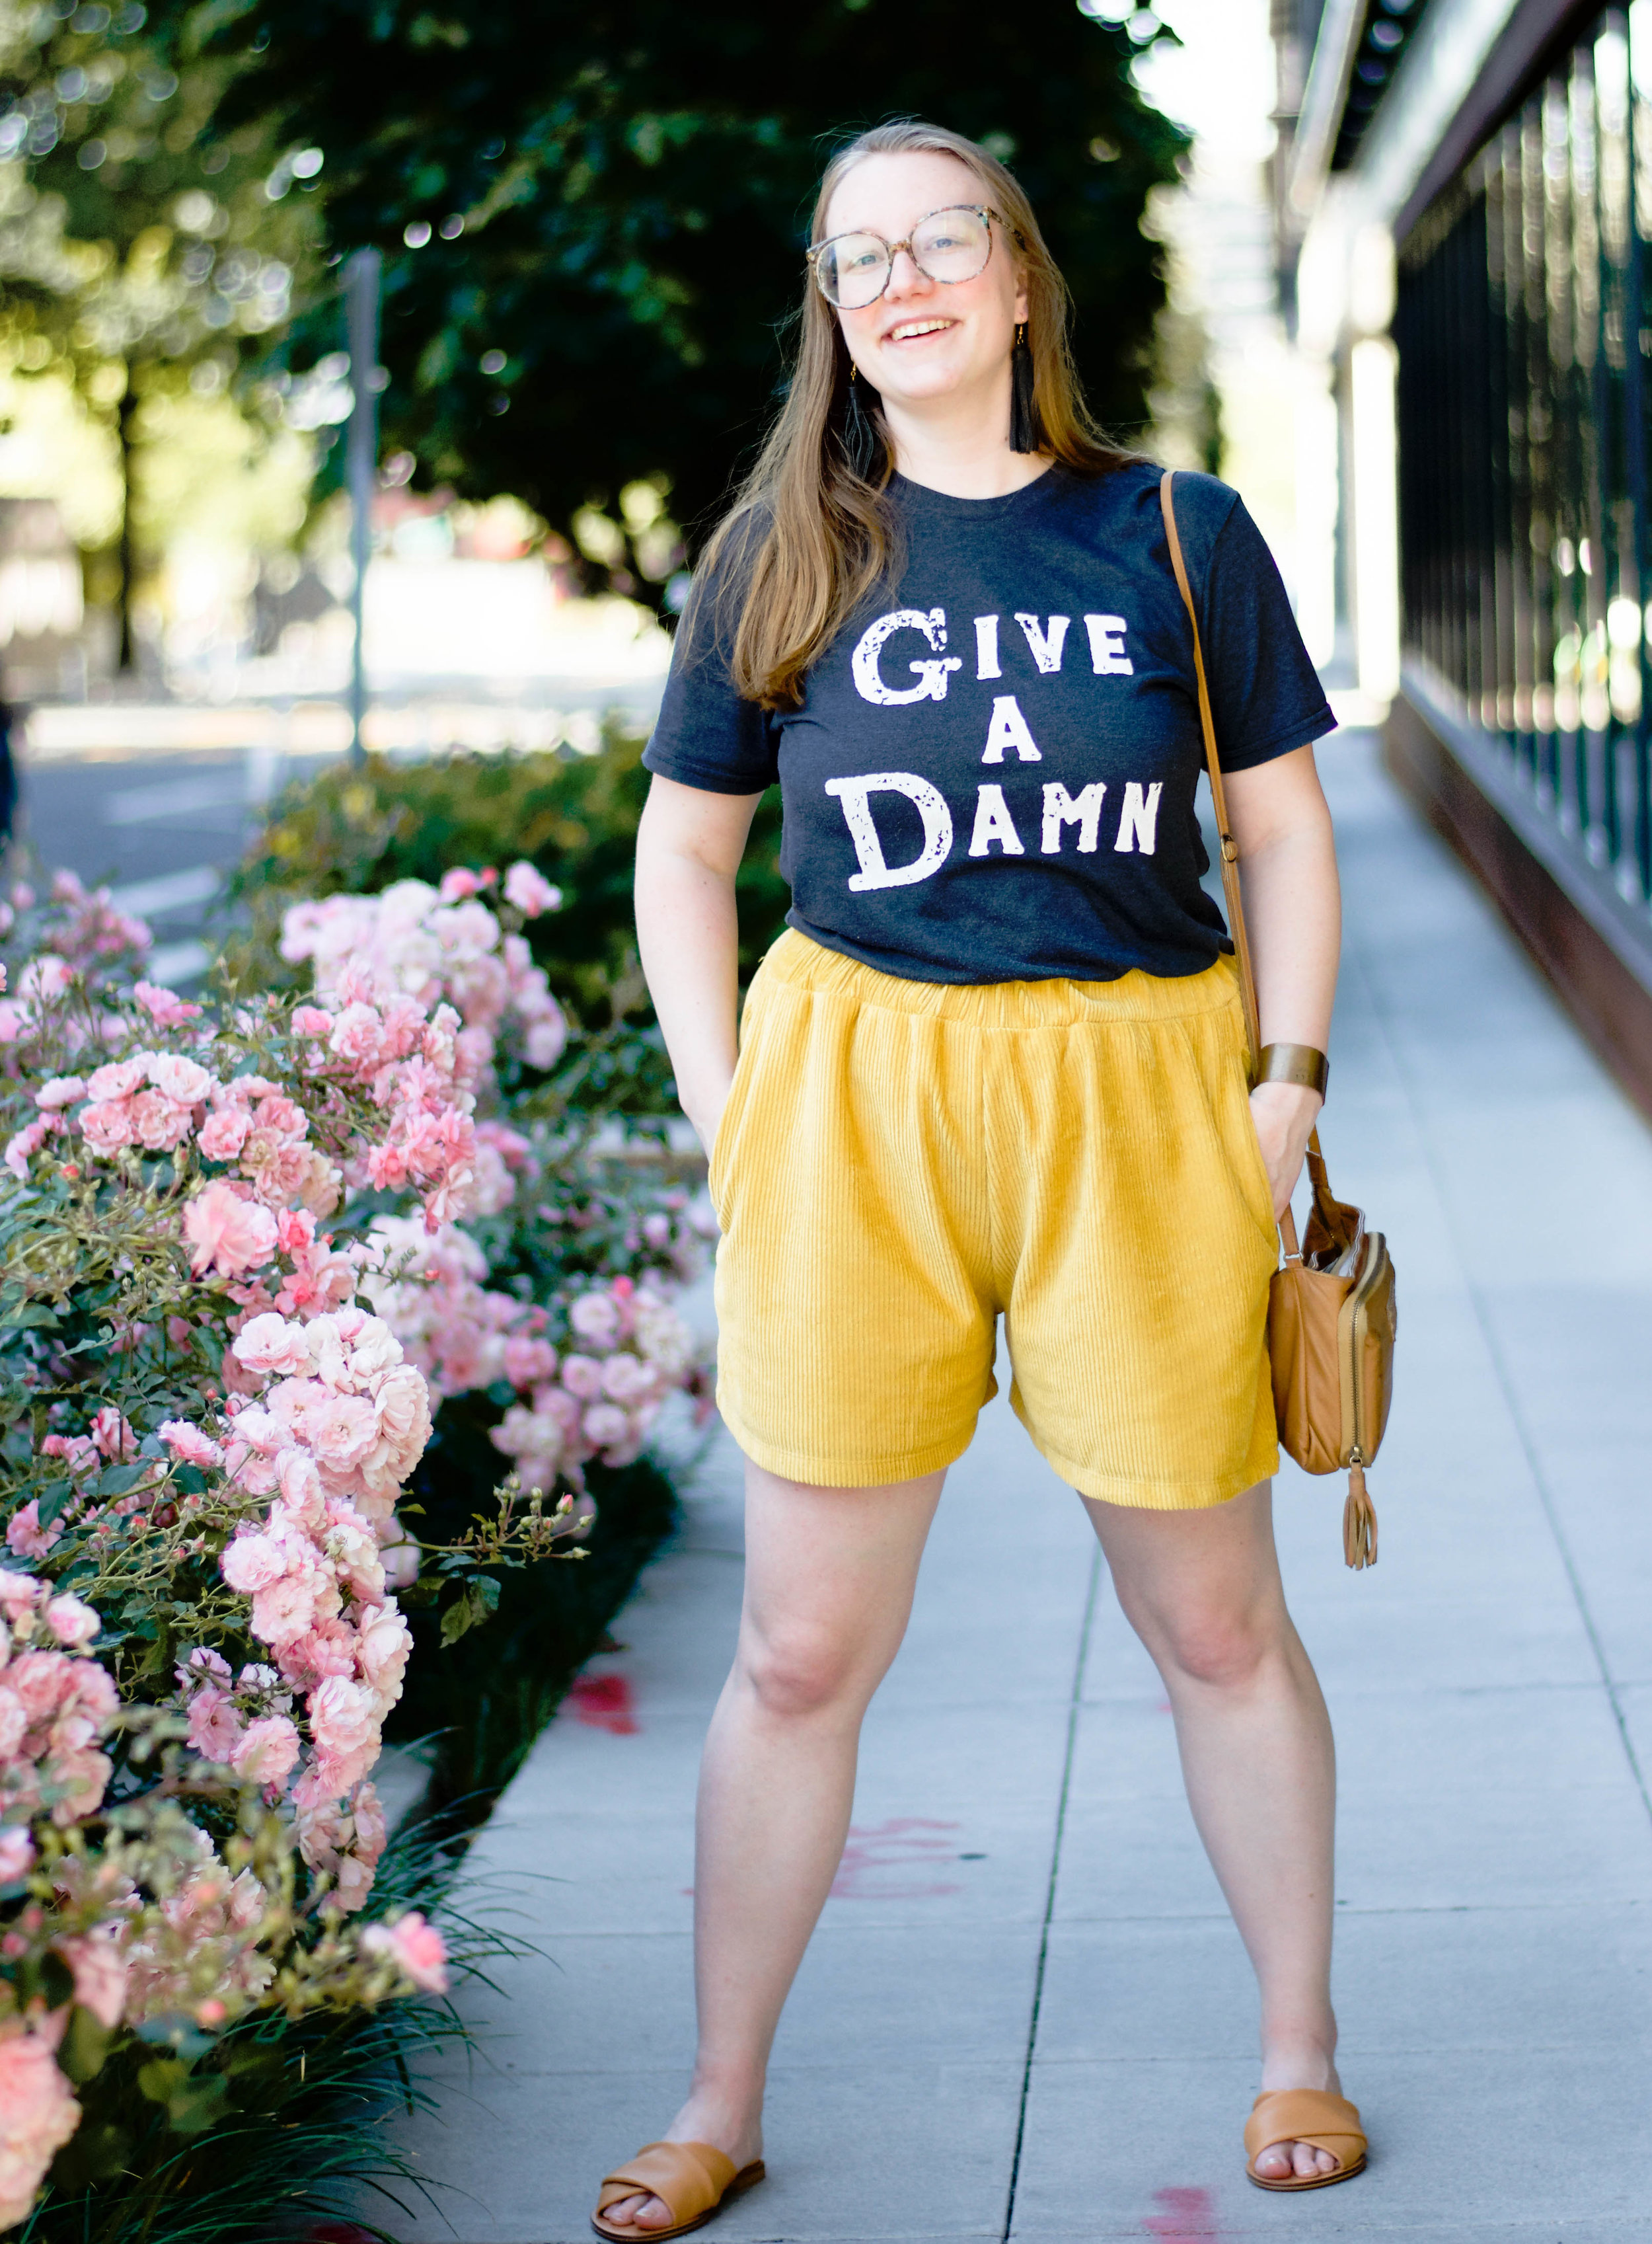 Ethically styled in  Give a Damn Classic tee  from  Give a Damn Goods  +  zero waste shorts from Tonlé  +  Leather Tassel Earrings  by HUGG +  Medium Cuff  by BRANDED Collective +  retro glasses  from  Retrospecced  + sandals from  Everlane